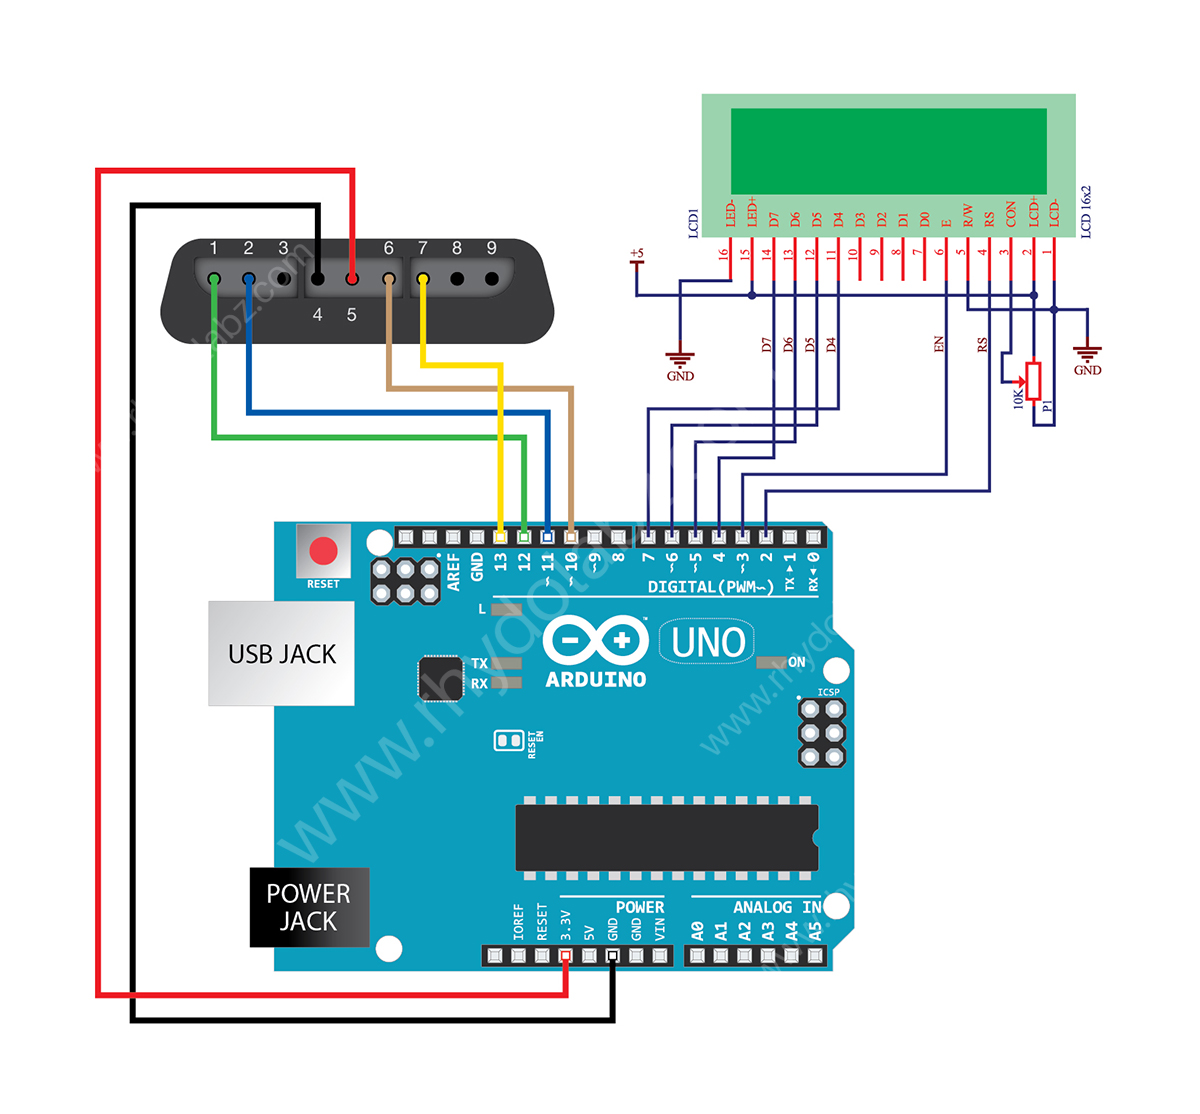 Lin Bus Shield For Arduino Featuring Atmel Ata6623c And Special 2 Wire Mode moreover Notifier Swift Wireless Integrated Fire Detection additionally Bartop Arcade Raspberry Pi Diy Paso 3 Conexion Mandos as well Watch furthermore UPort 1110. on usb wiring diagram